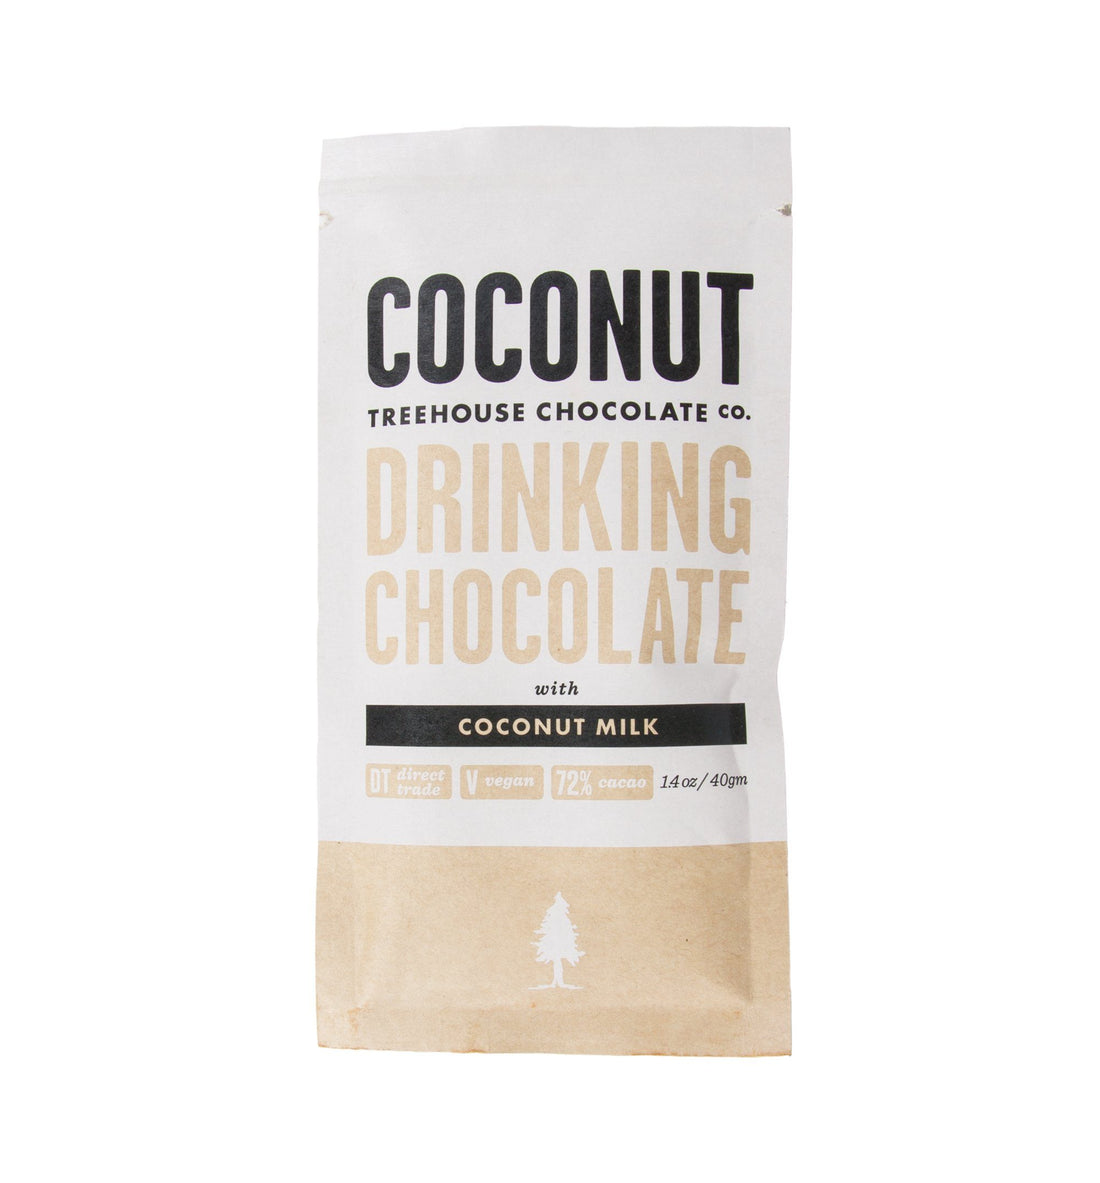 Treehouse Chocolate Co. Coconut – Iron and Resin